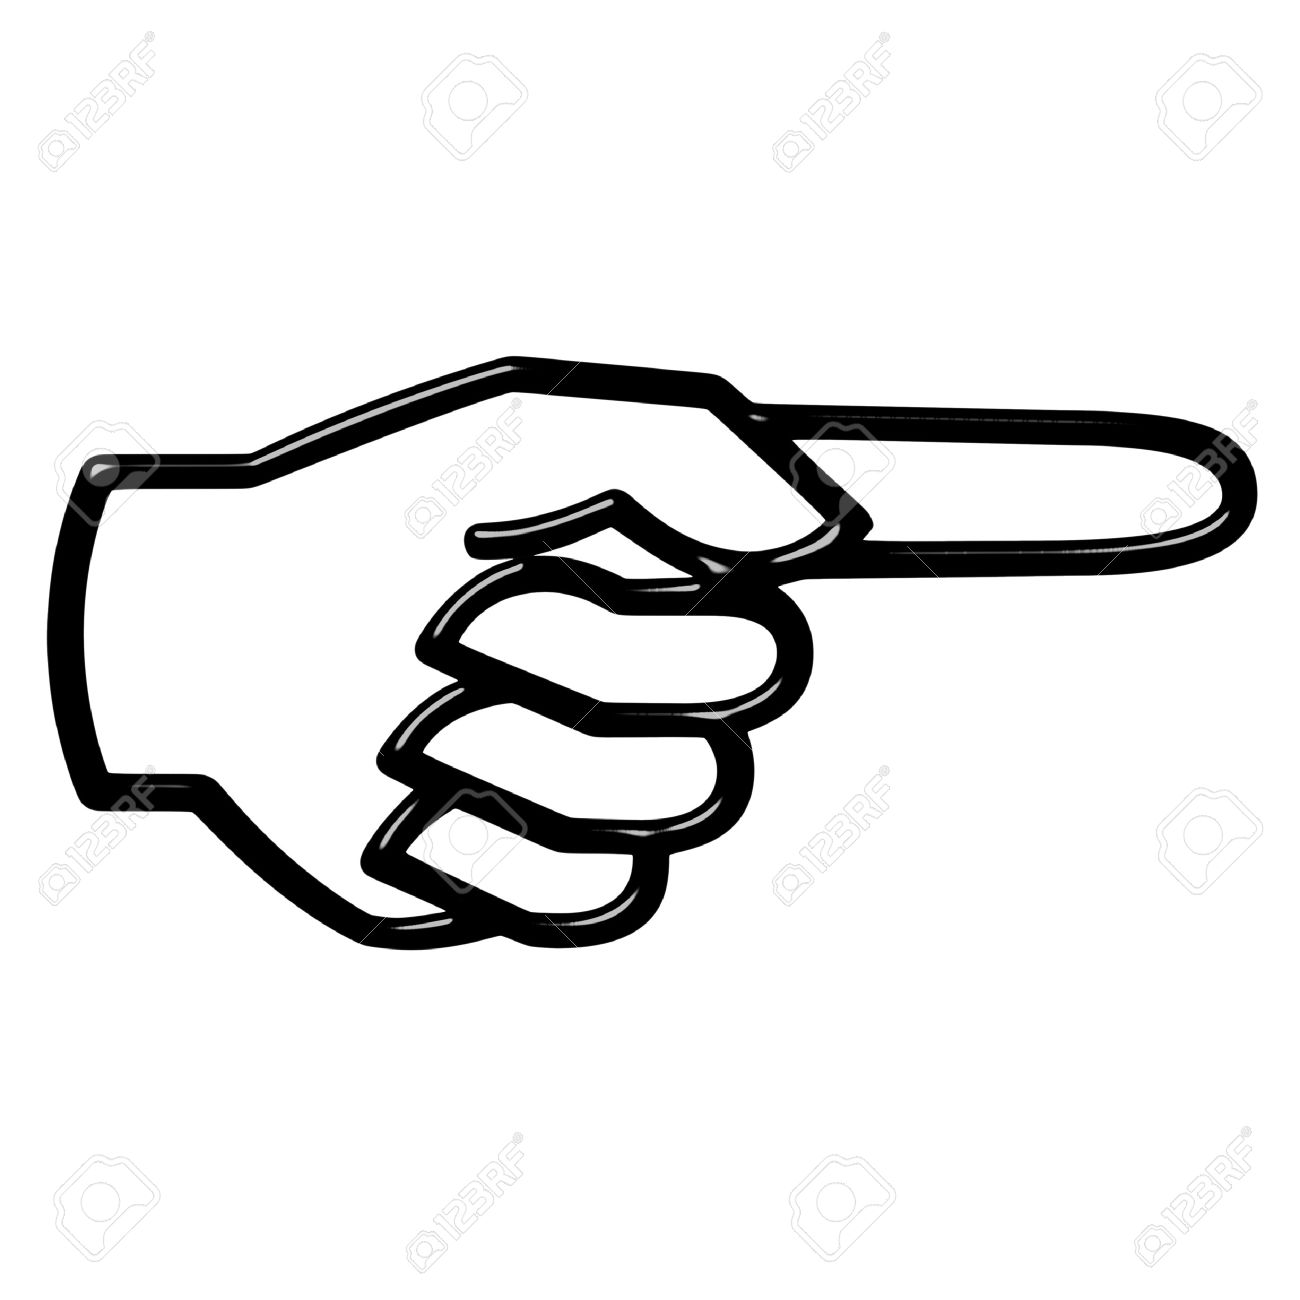 Hand pointing right clipart.